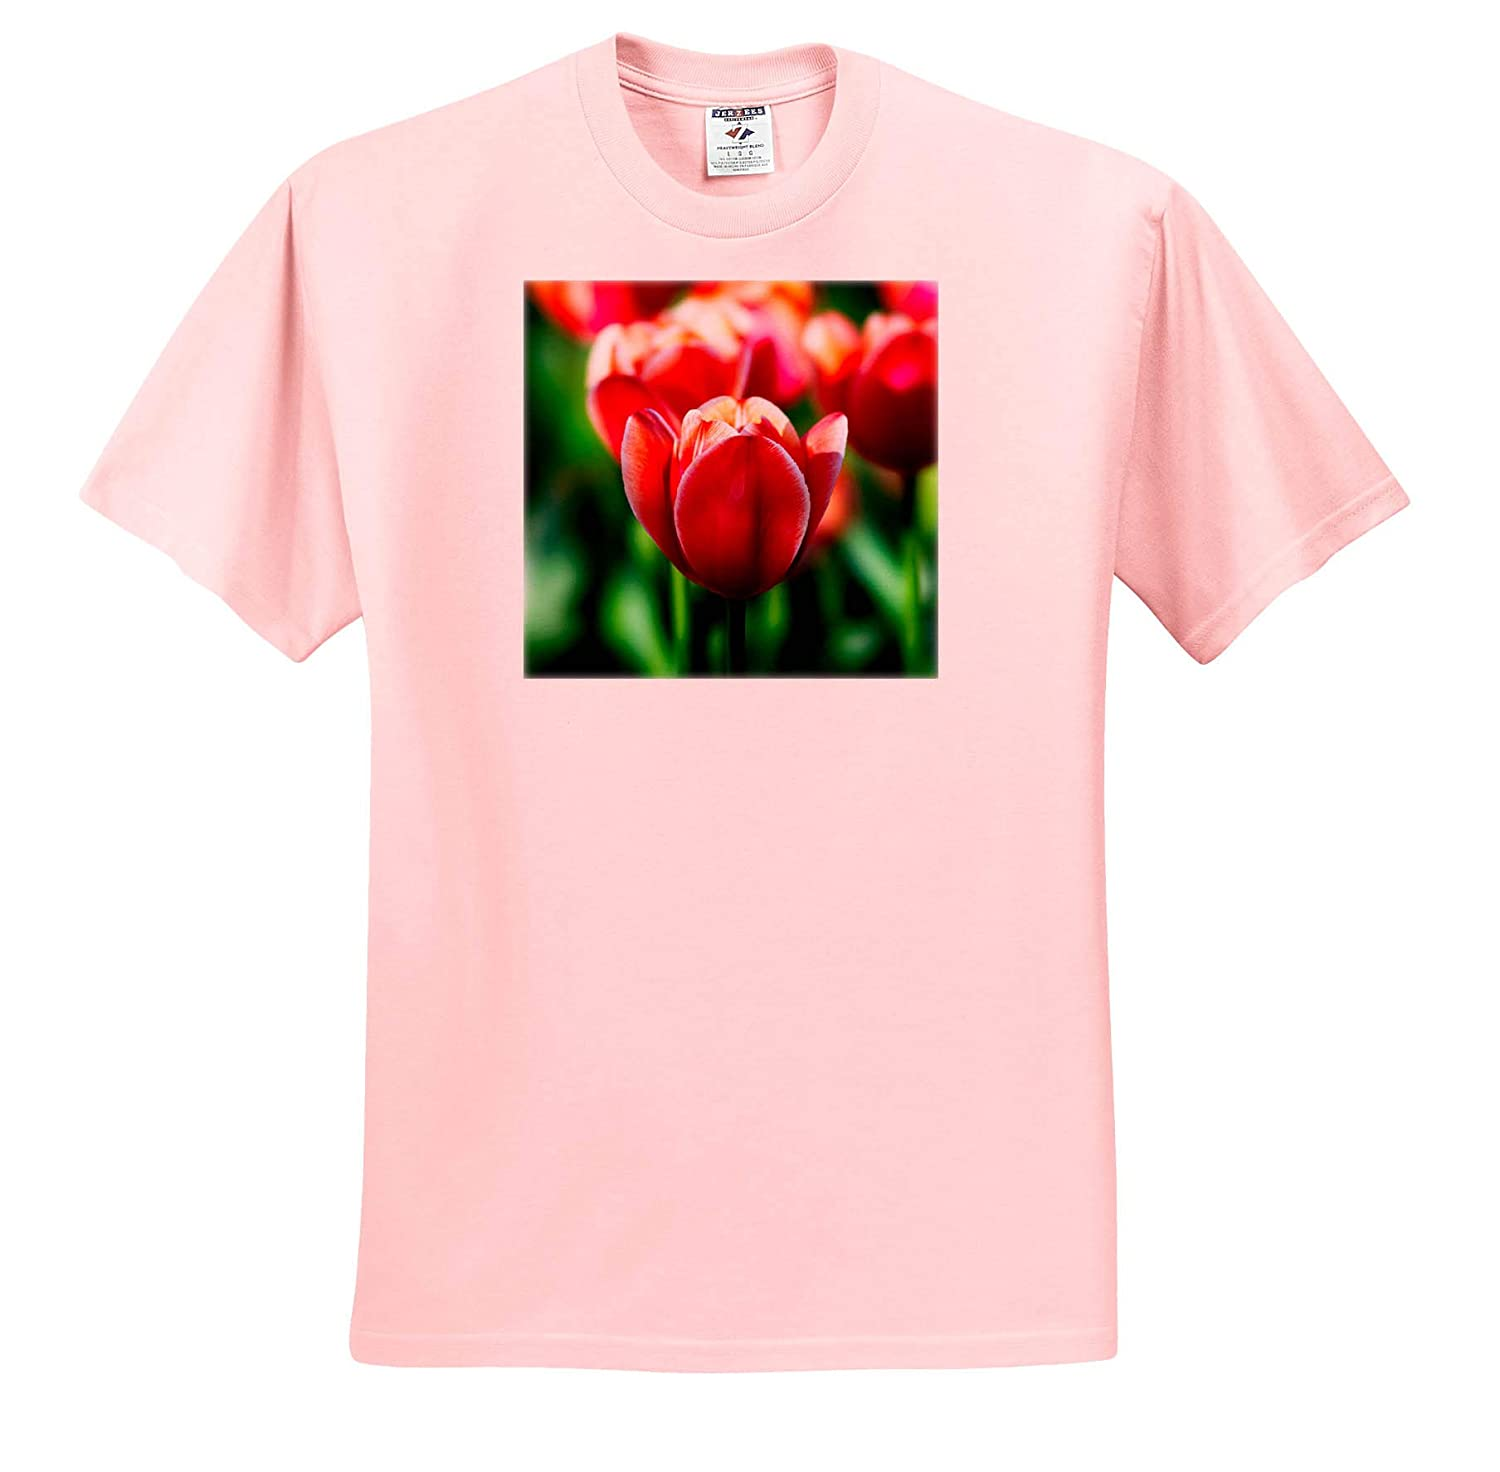 3dRose Alexis Photography Elegant Tulip Flowers on a Sunny Summer Day Red and Green Colors T-Shirts Flowers Tulips